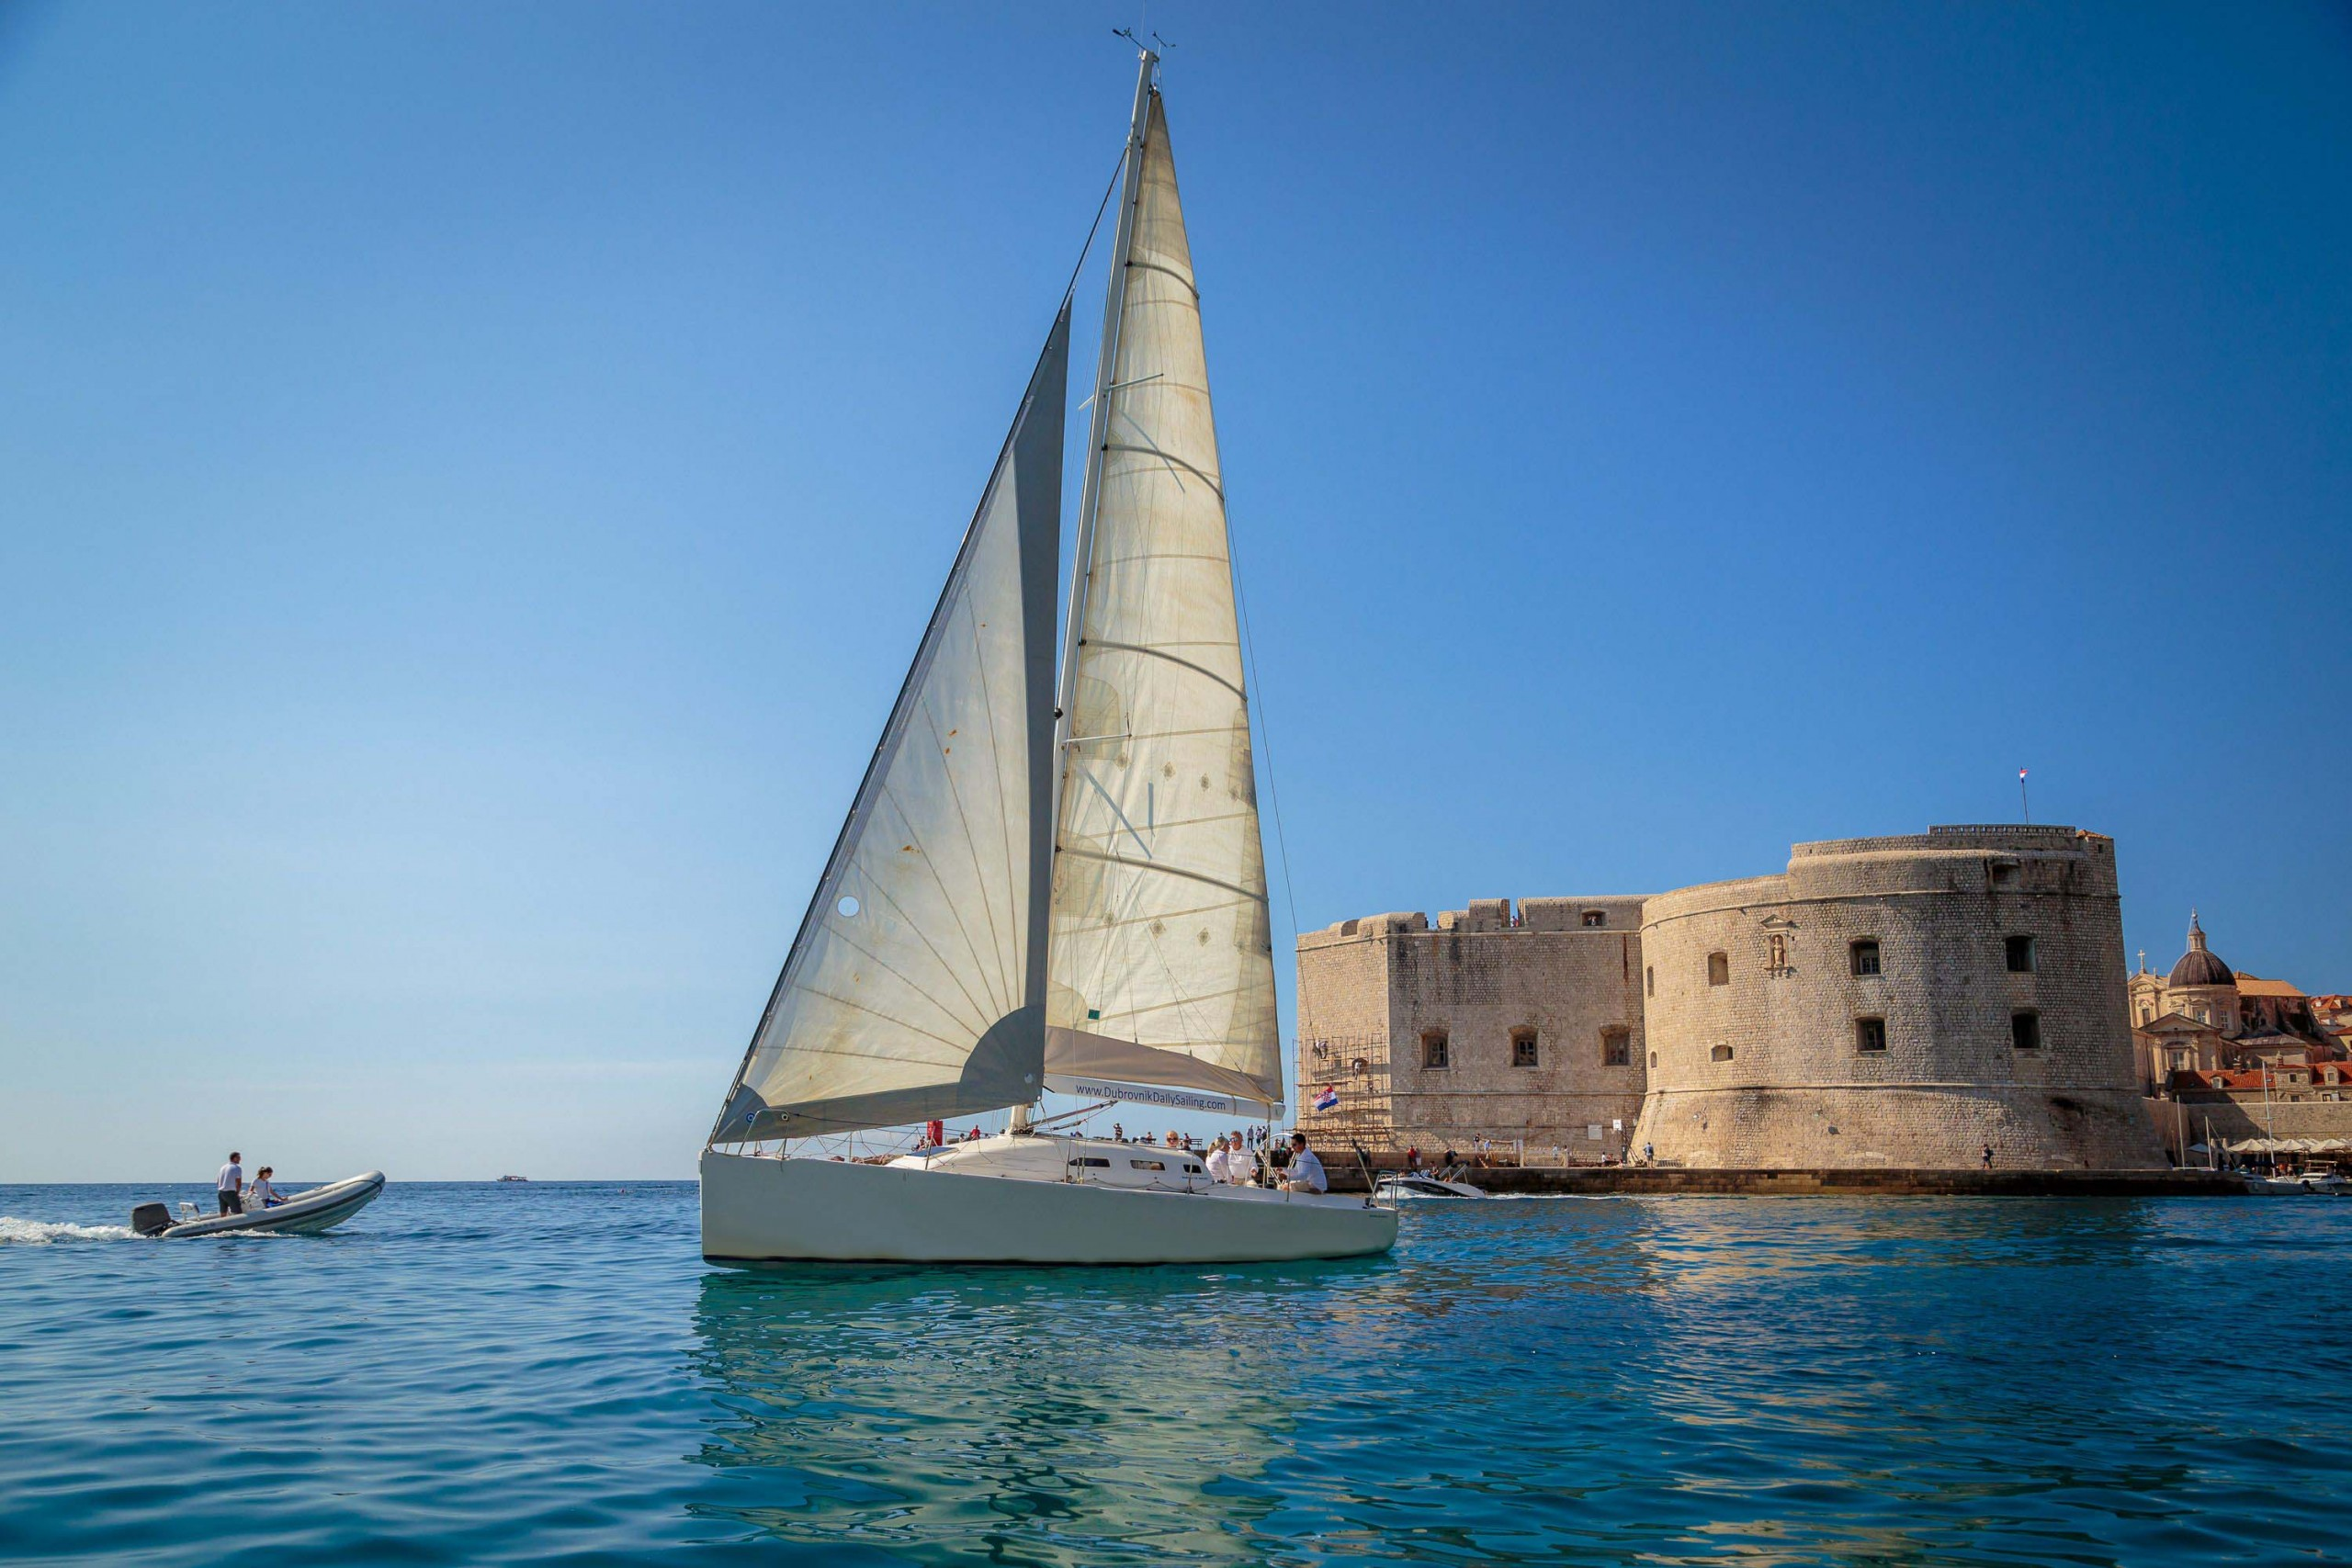 Old Town Dubrovnik private trip on sailboat